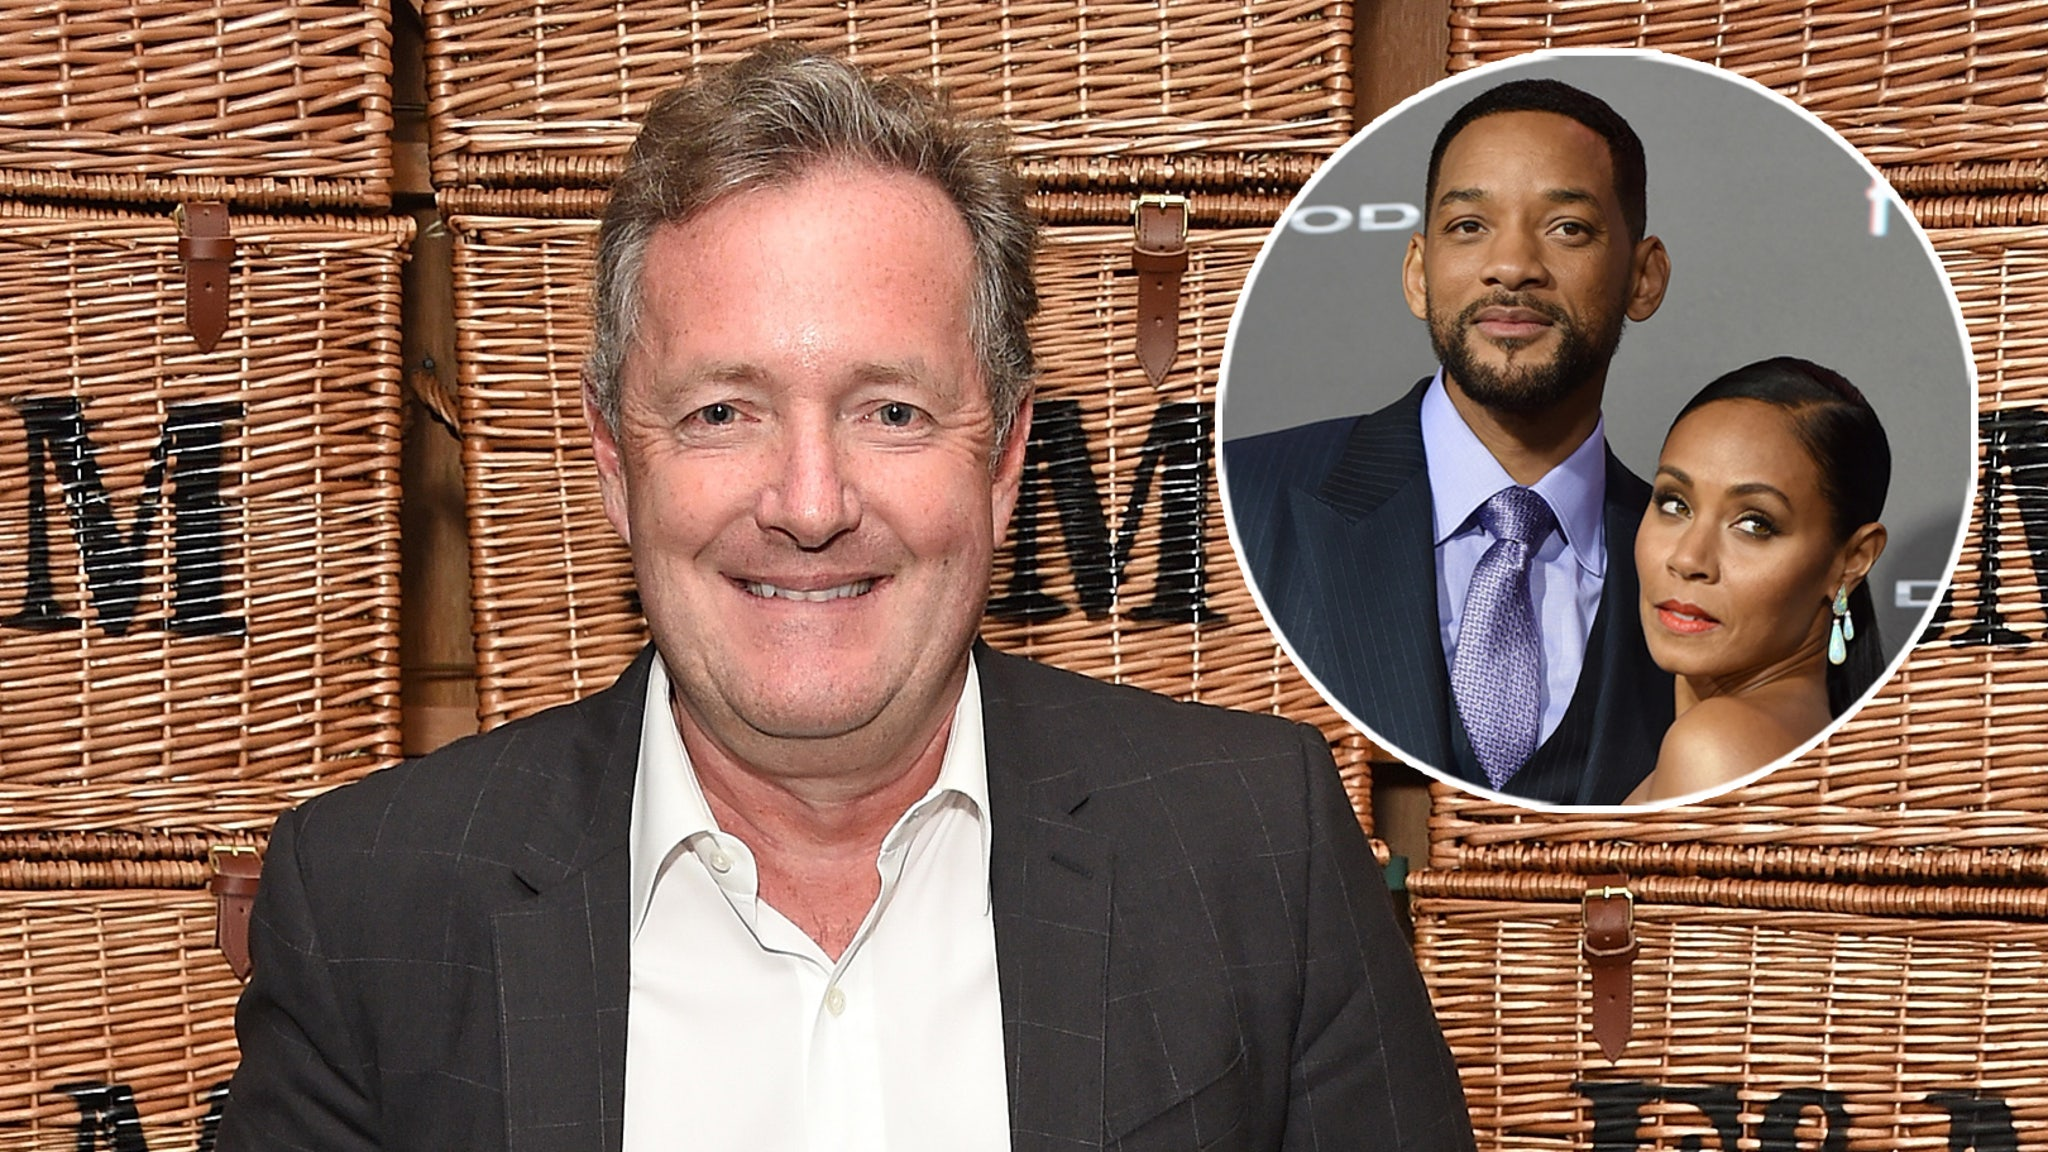 Piers Morgan Says Will Smith Once 'Secretly Crept Into Studio' to Watch Jada's Interview About Couple's Sex Life